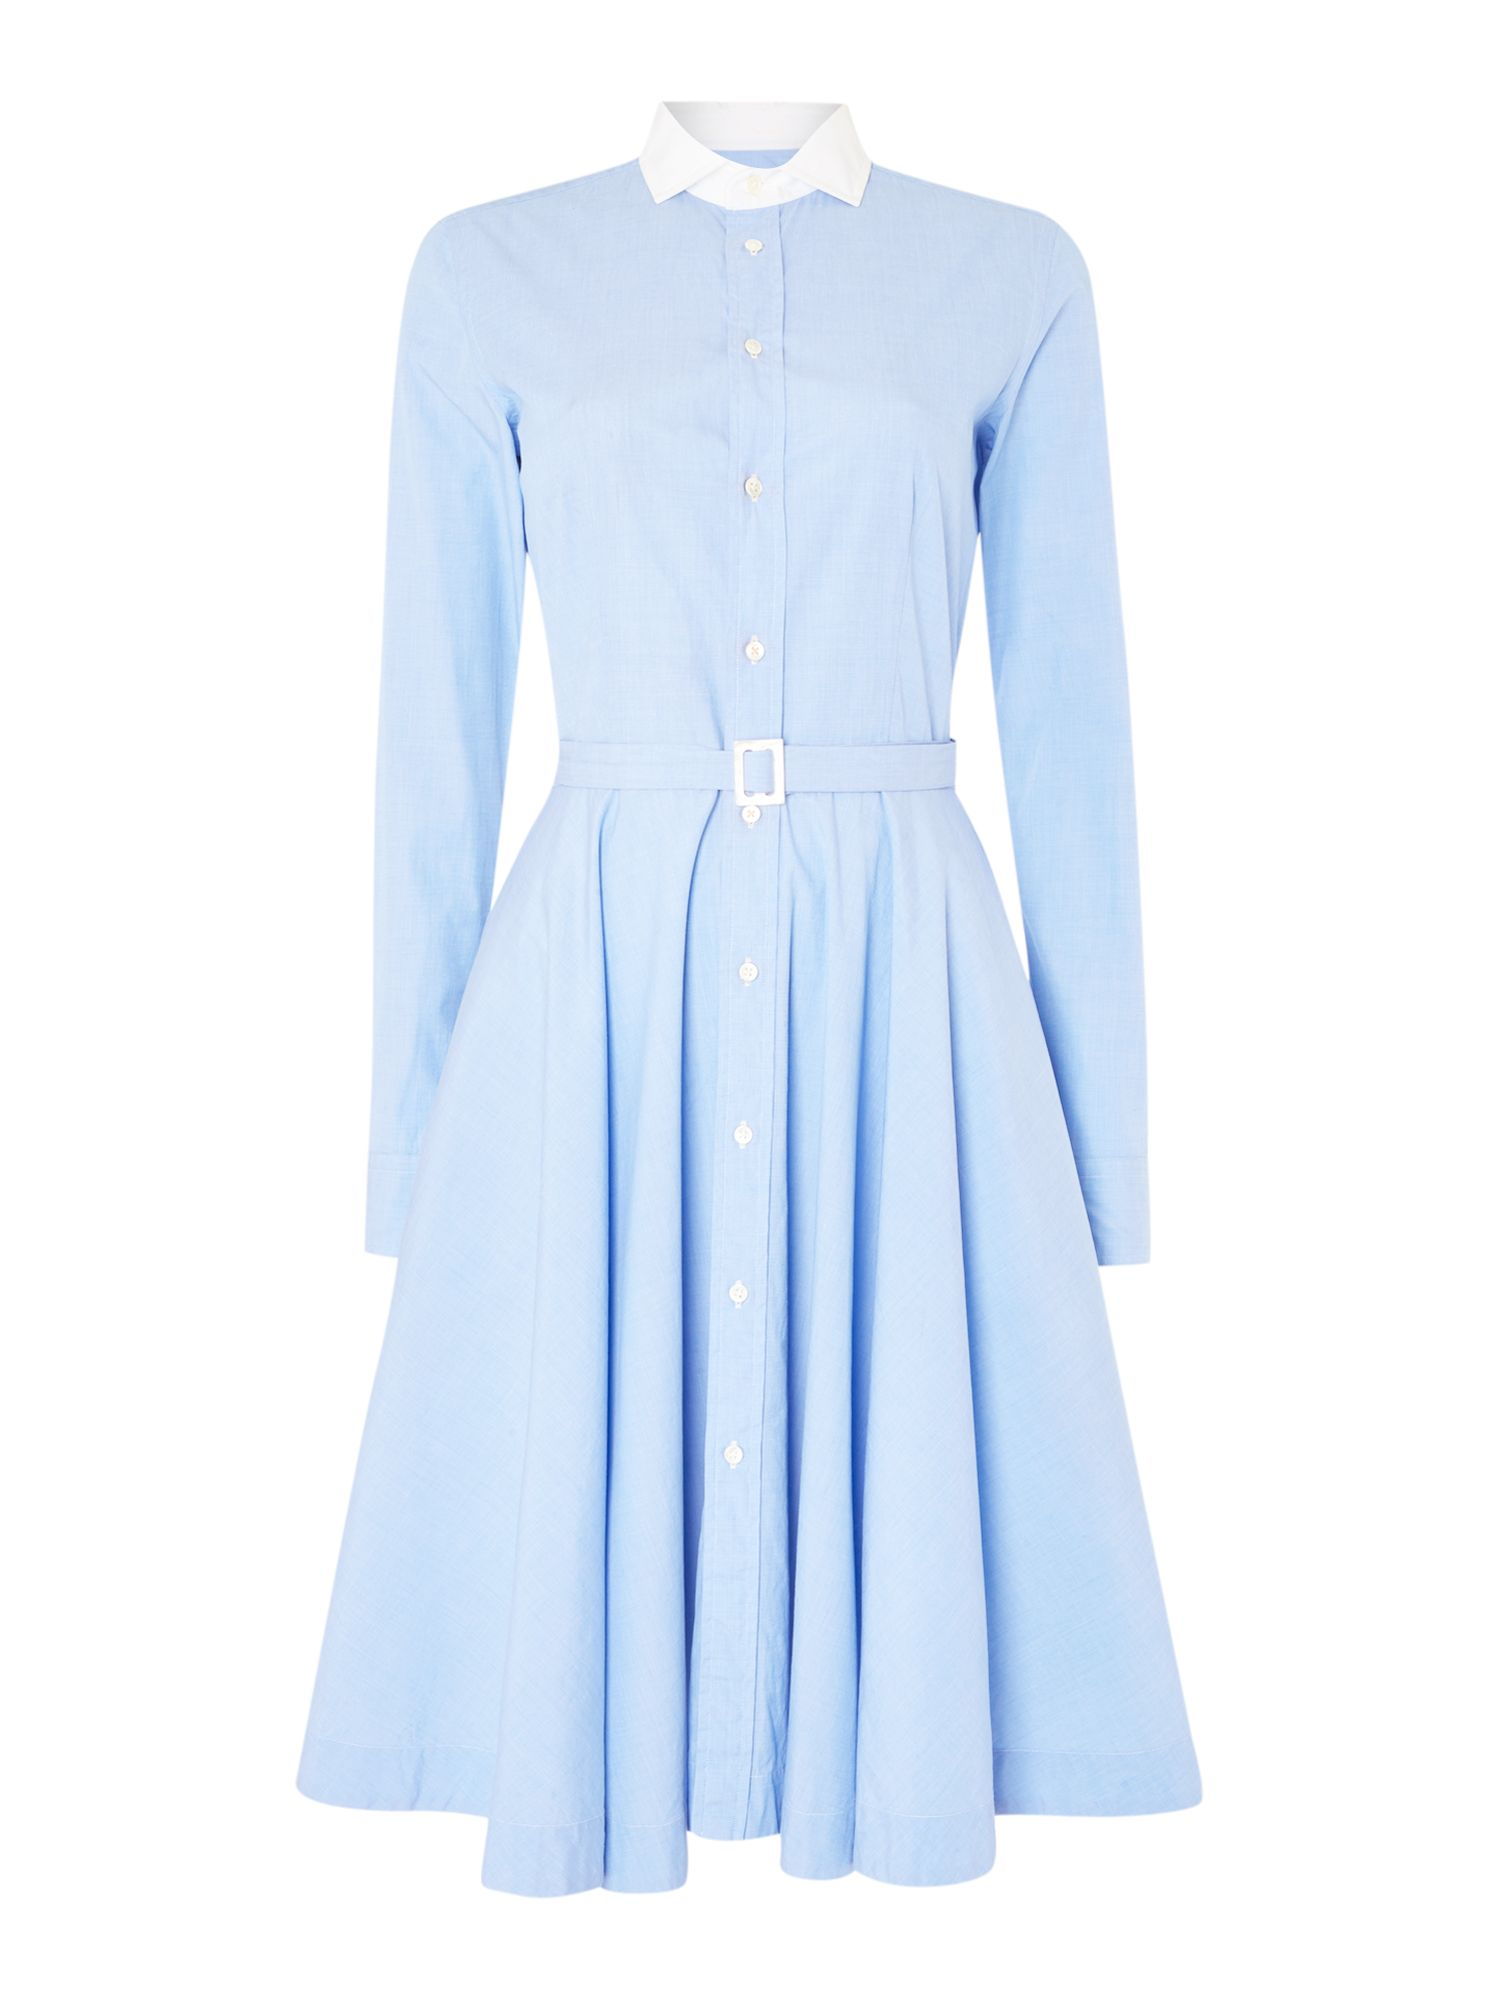 Polo Ralph Lauren Dori long sleeve shirt dress with white collar ...